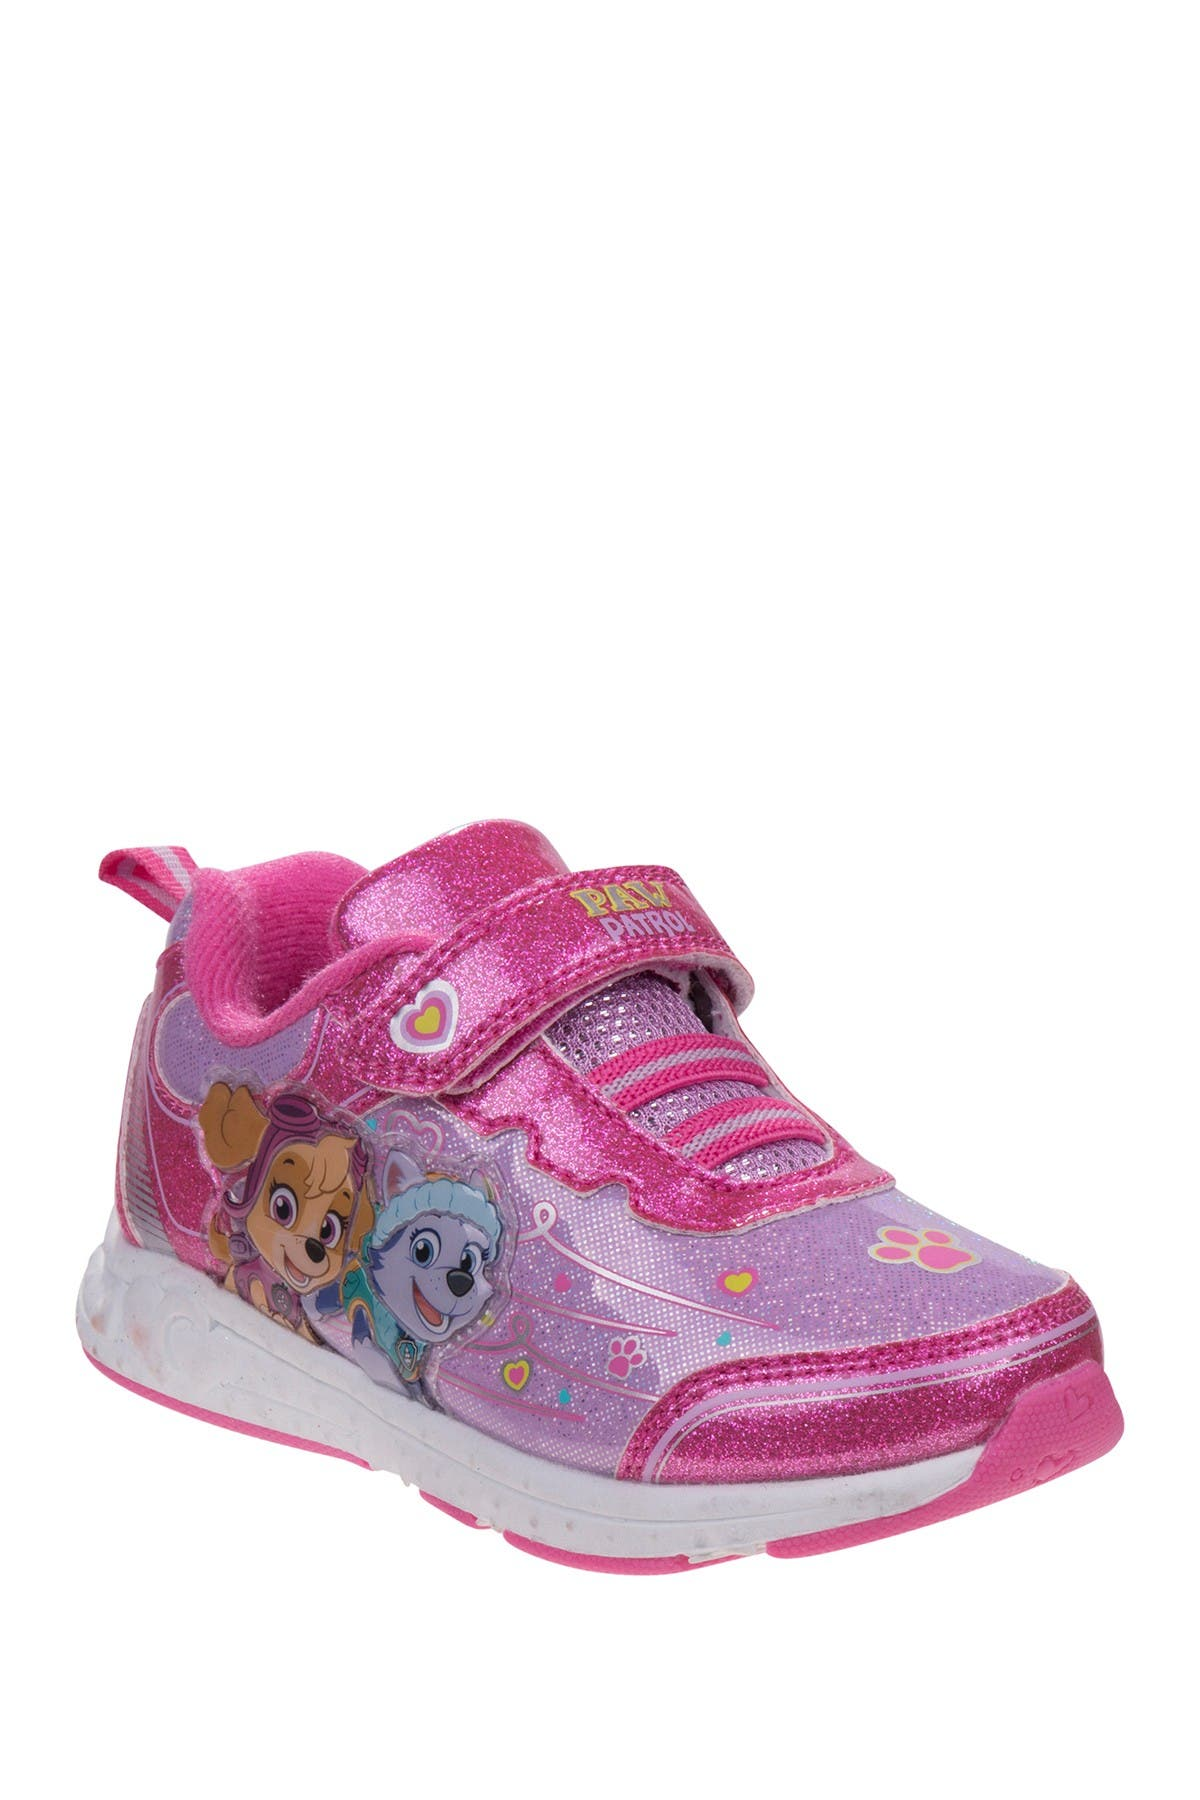 Image of Josmo Nickelodeon Paw Patrol Light-Up Sneaker